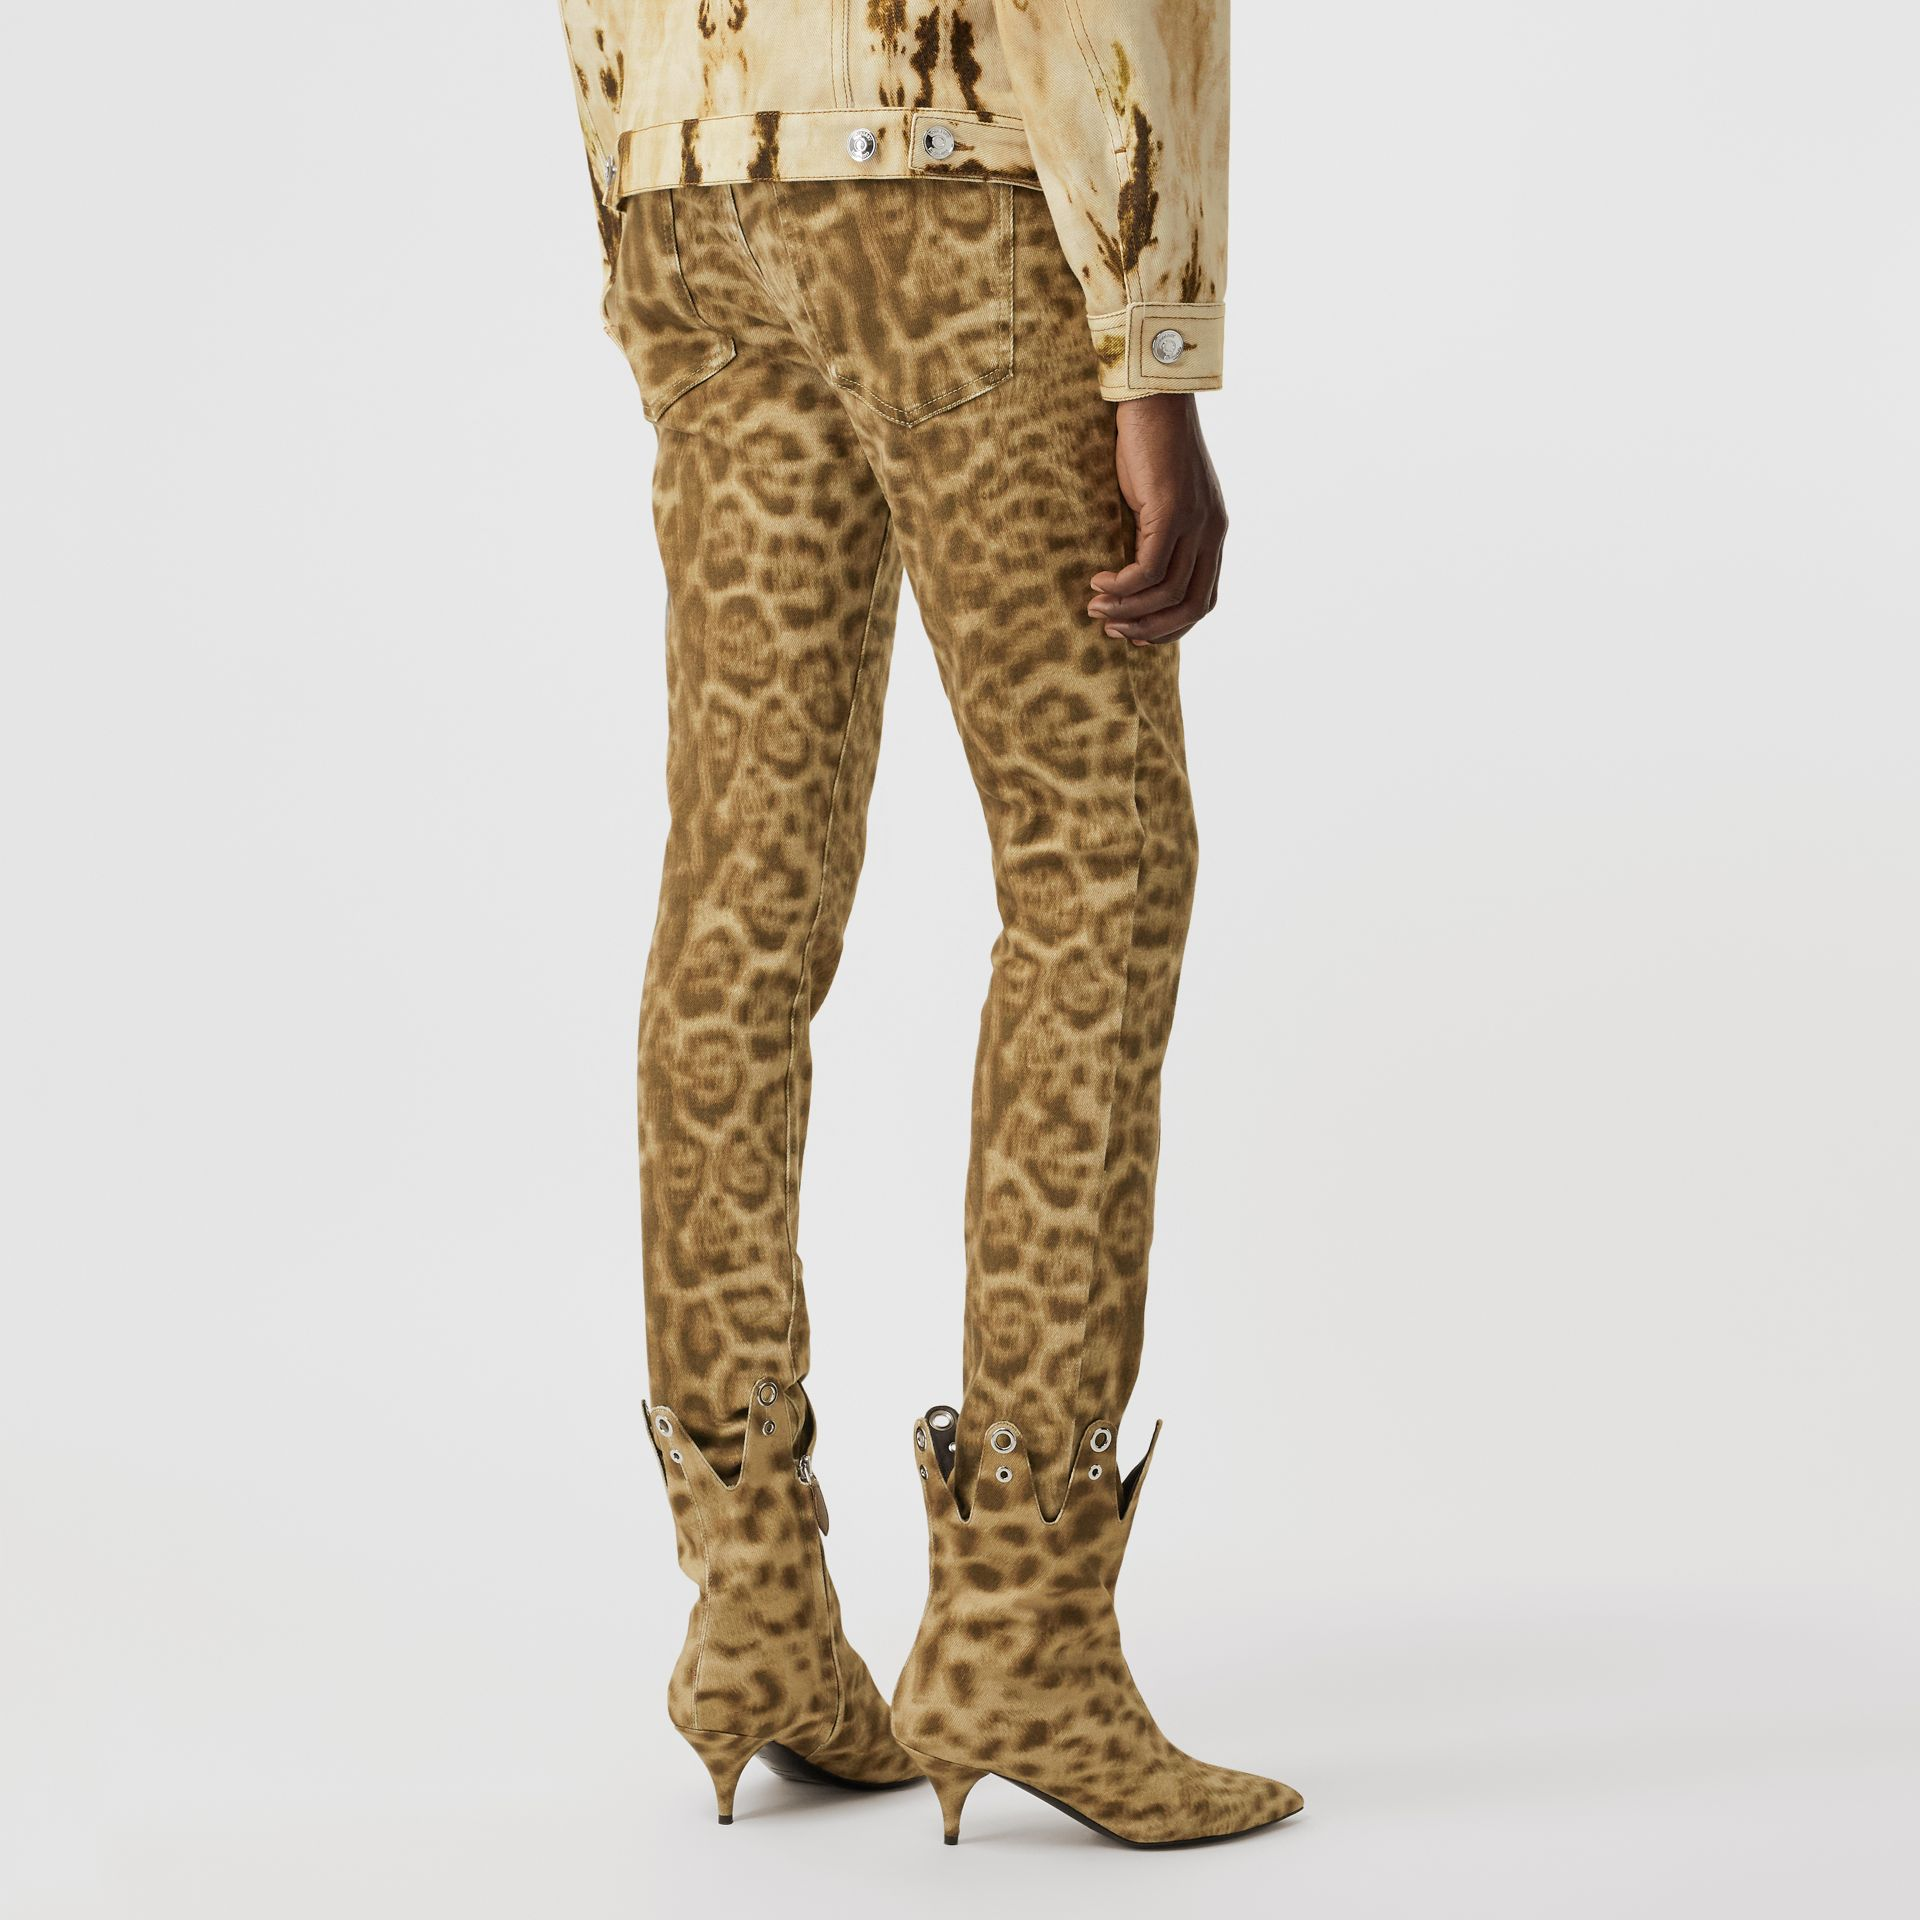 Straight Fit Leopard Print Japanese Denim Jeans in Beige - Women | Burberry - gallery image 1